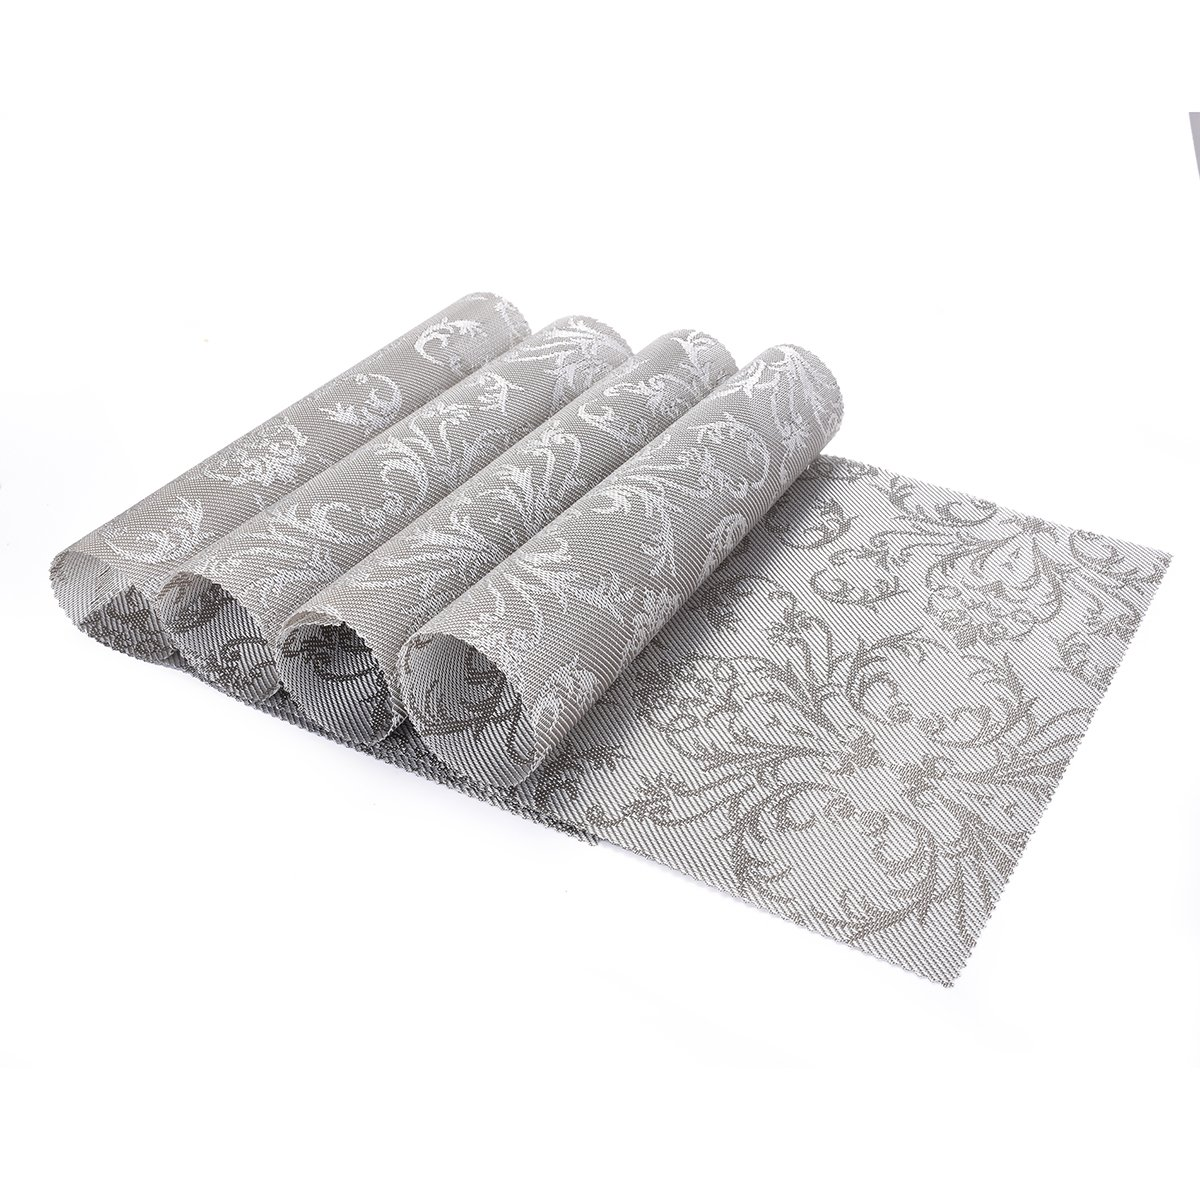 OZCHIN Placemats Dining Kitchen Table Non-slip Insulation Placemat Washable Table Mats Set of 4 Silver by OZCHIN (Image #2)